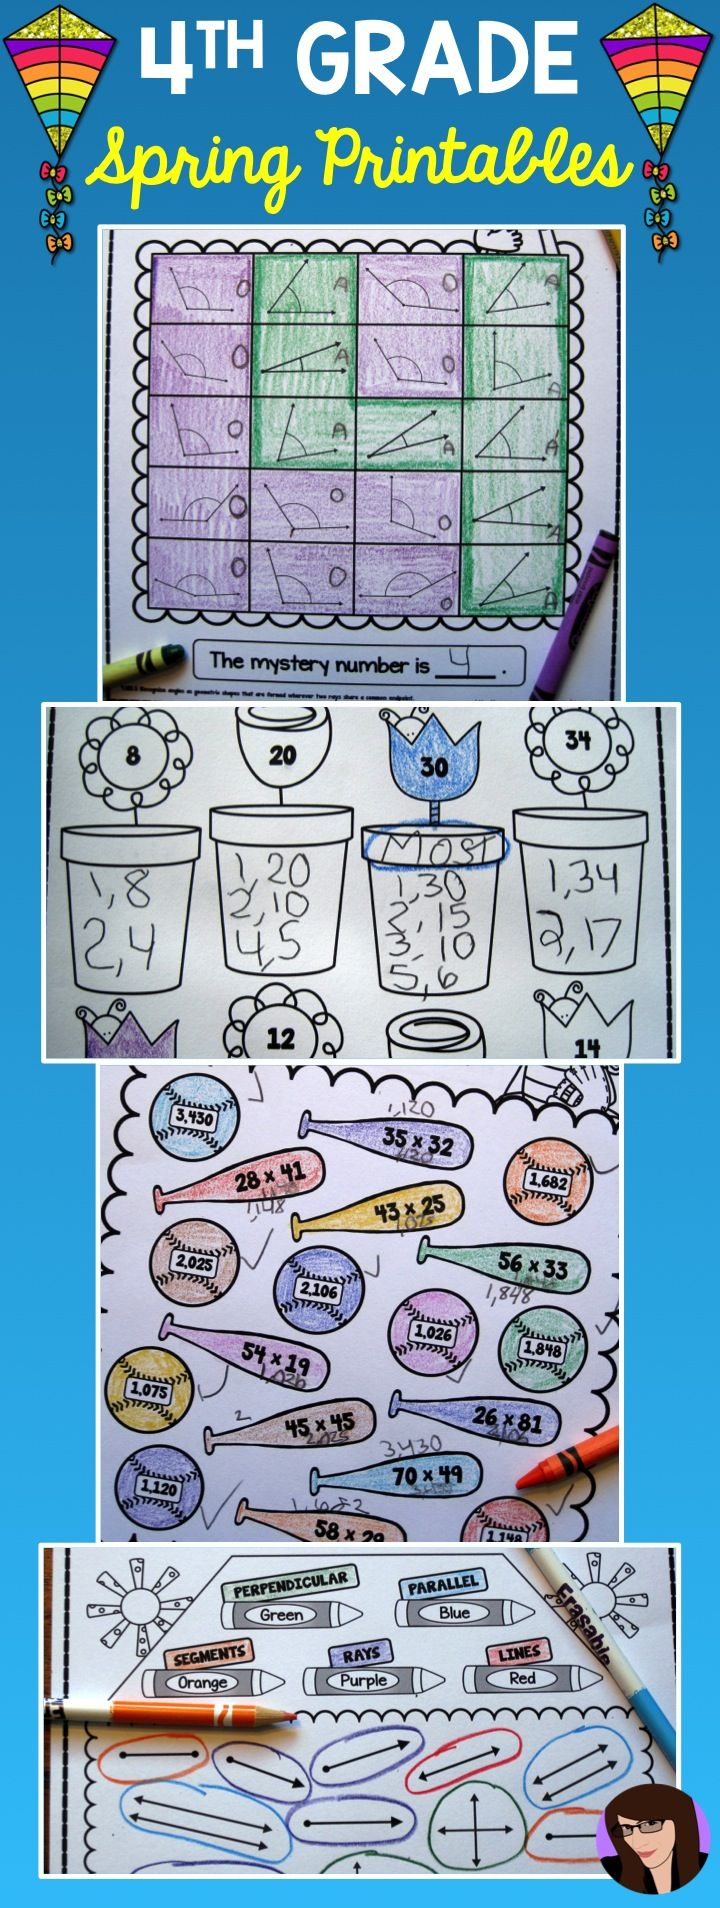 46 best Homeschool Math images on Pinterest | 3rd grade math ...